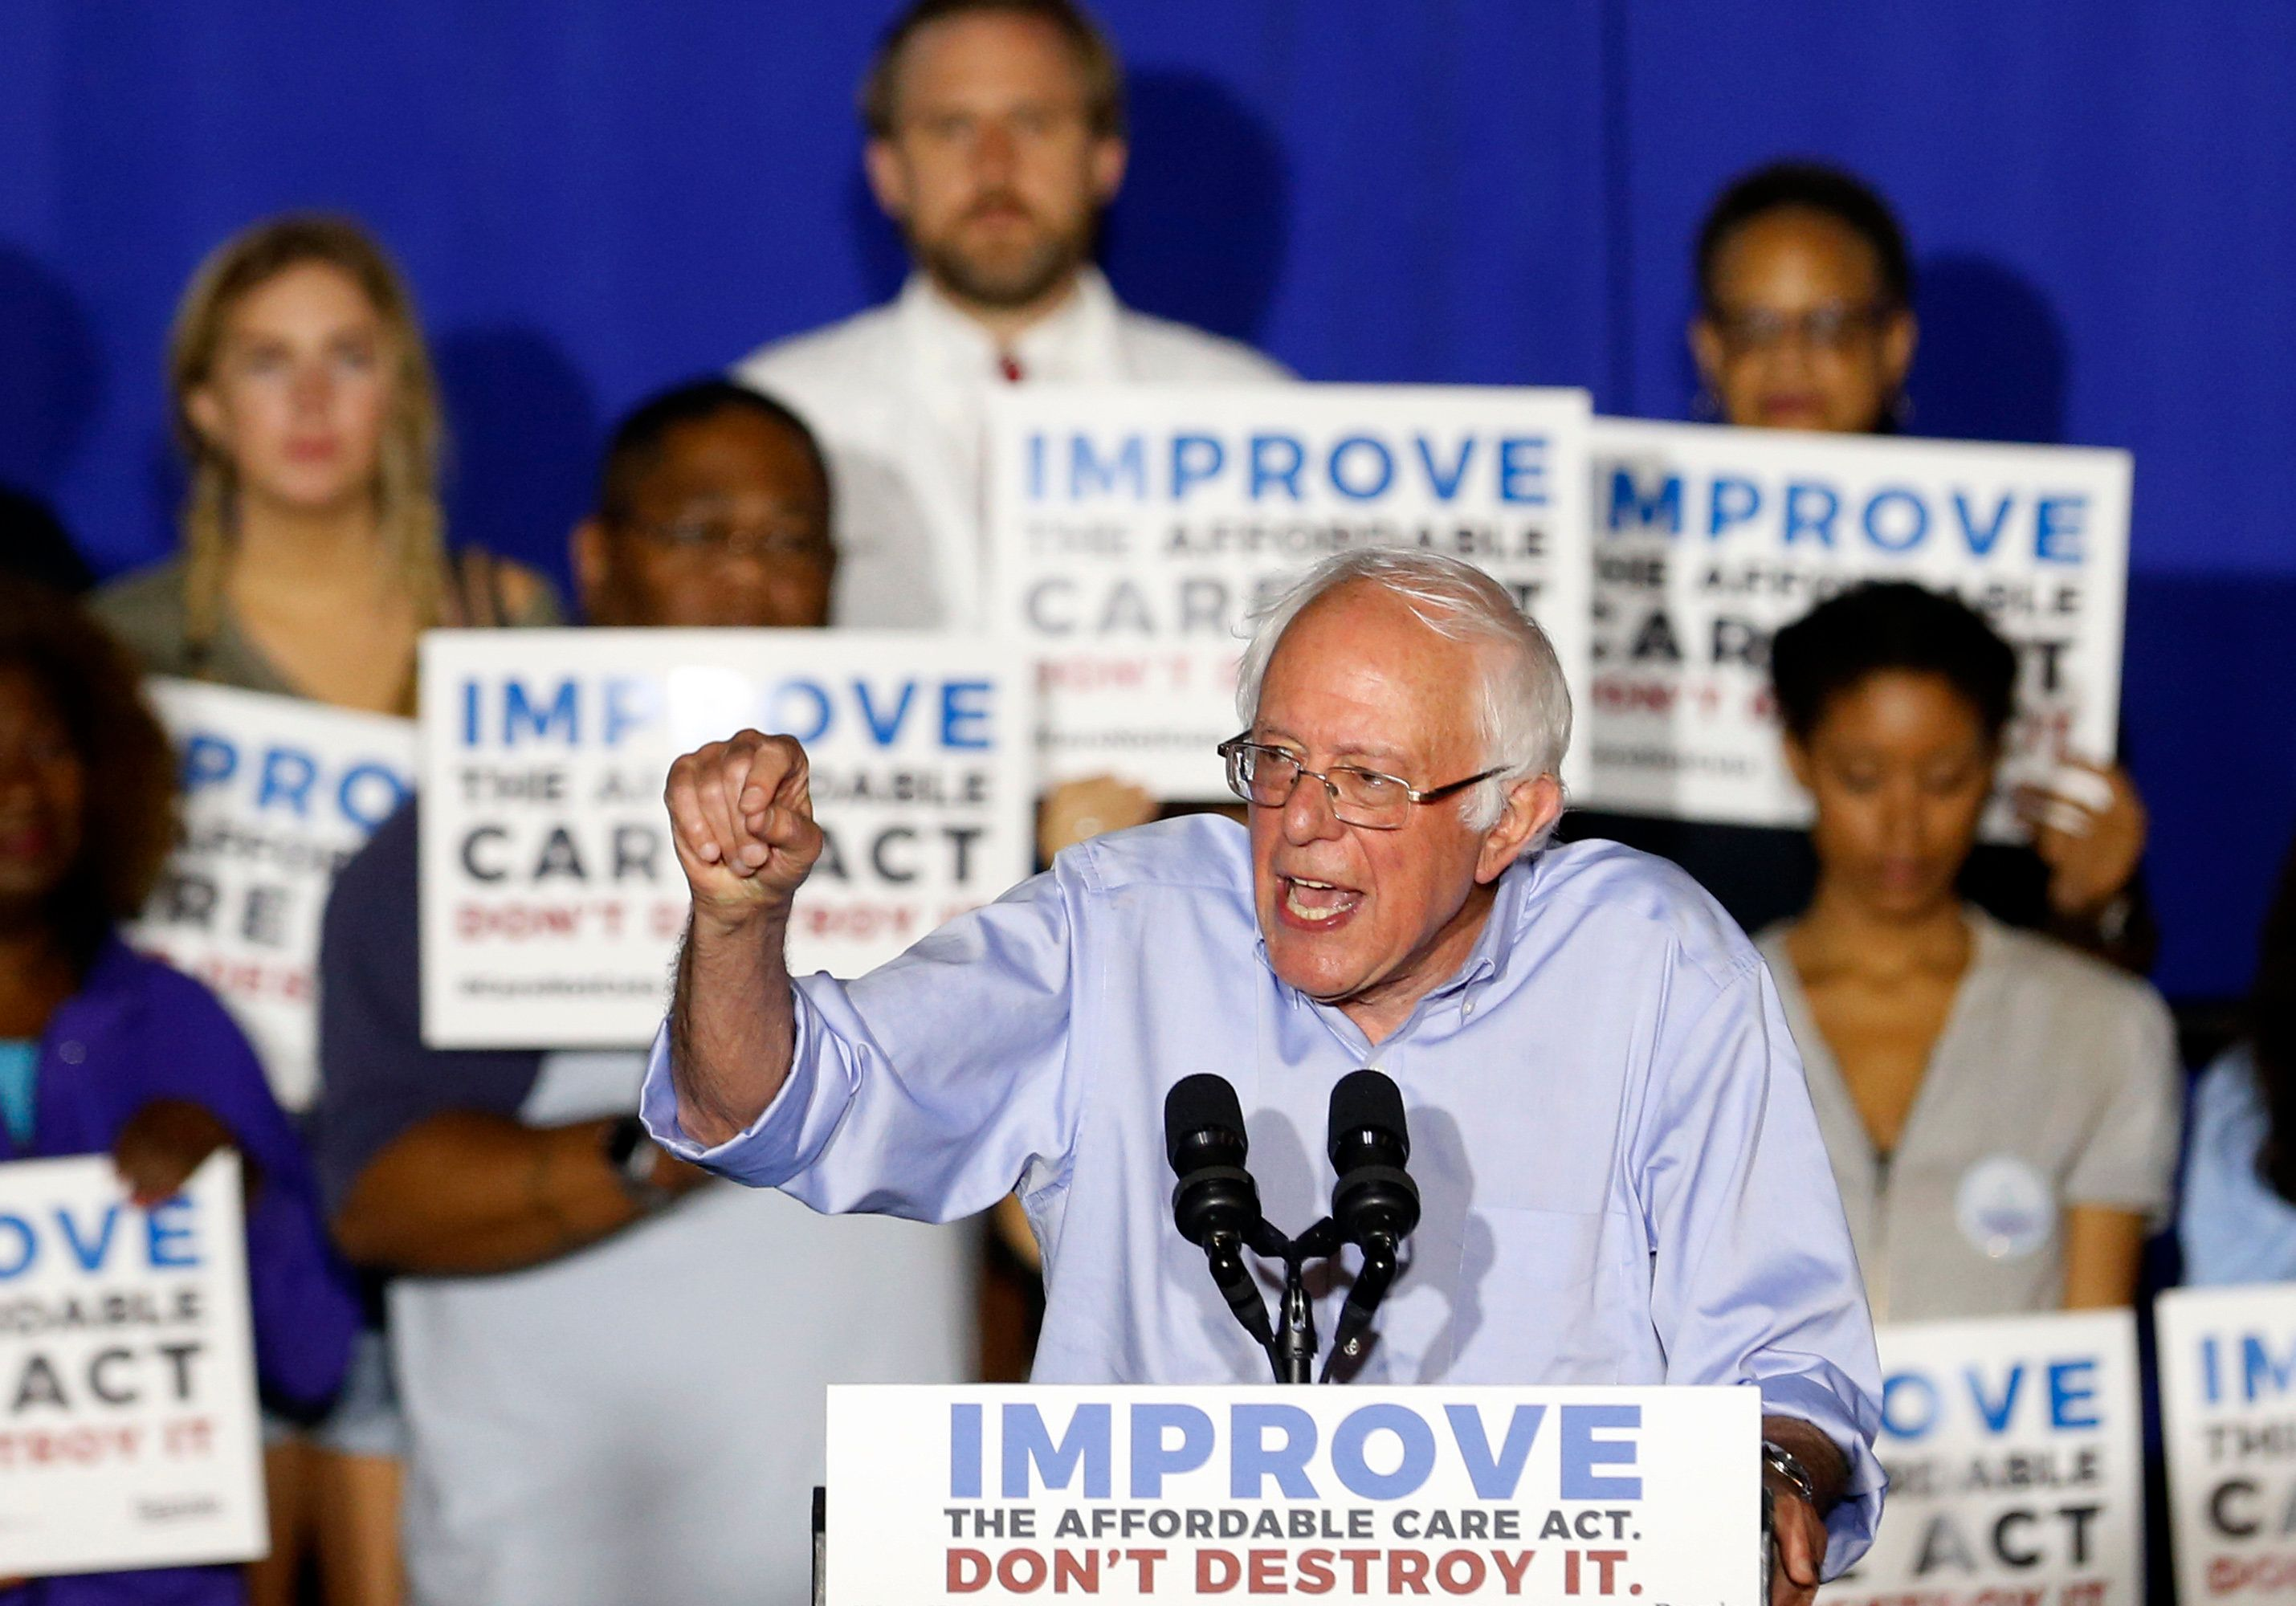 Sen. Bernie Sanders (I-Vt.), who hit the road over the summer to defend the Affordable Care Act, is set to introduce legislat